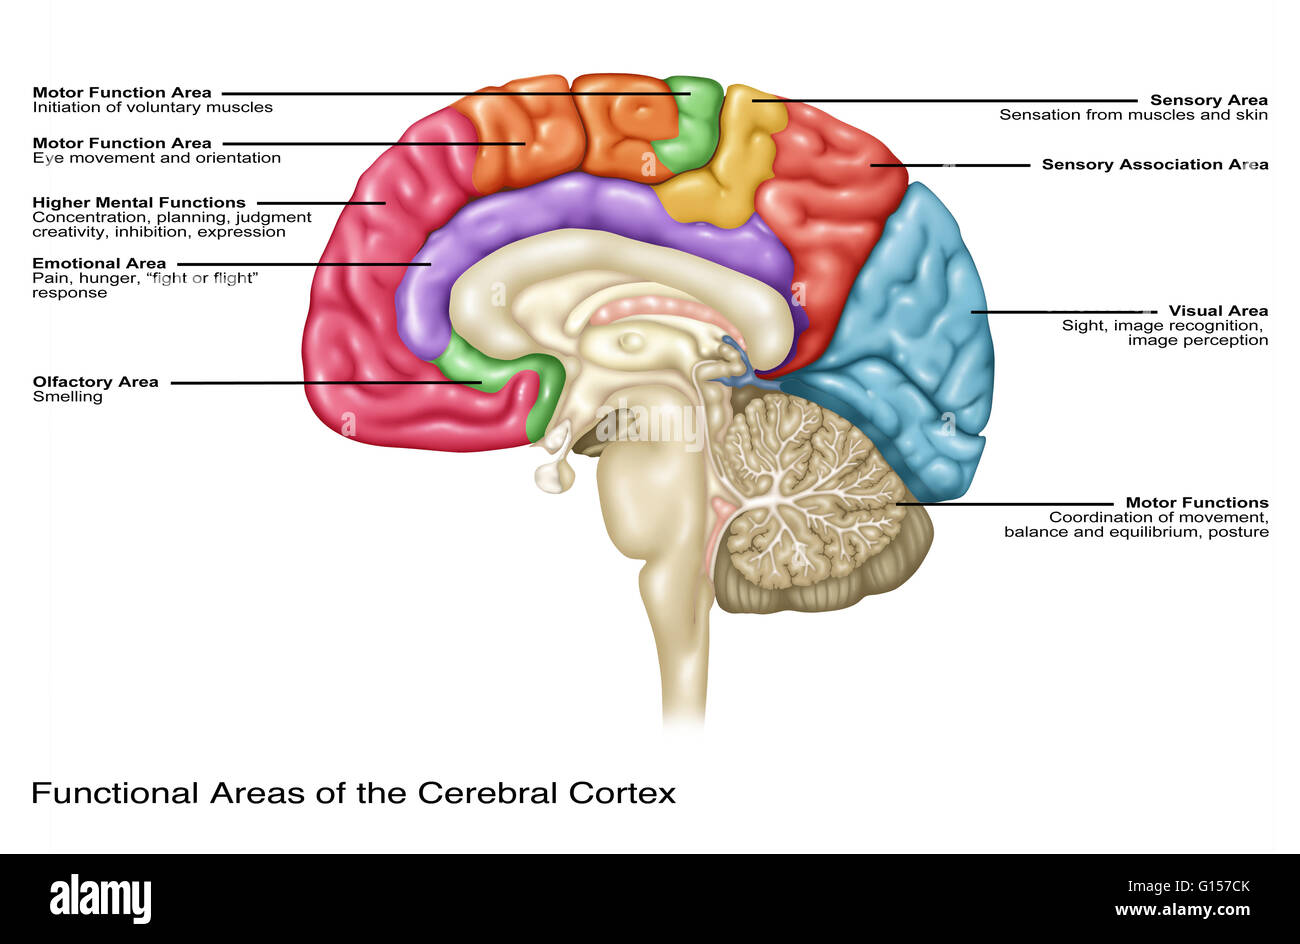 Cerebral Cortex Areas Stockfotos & Cerebral Cortex Areas Bilder - Alamy